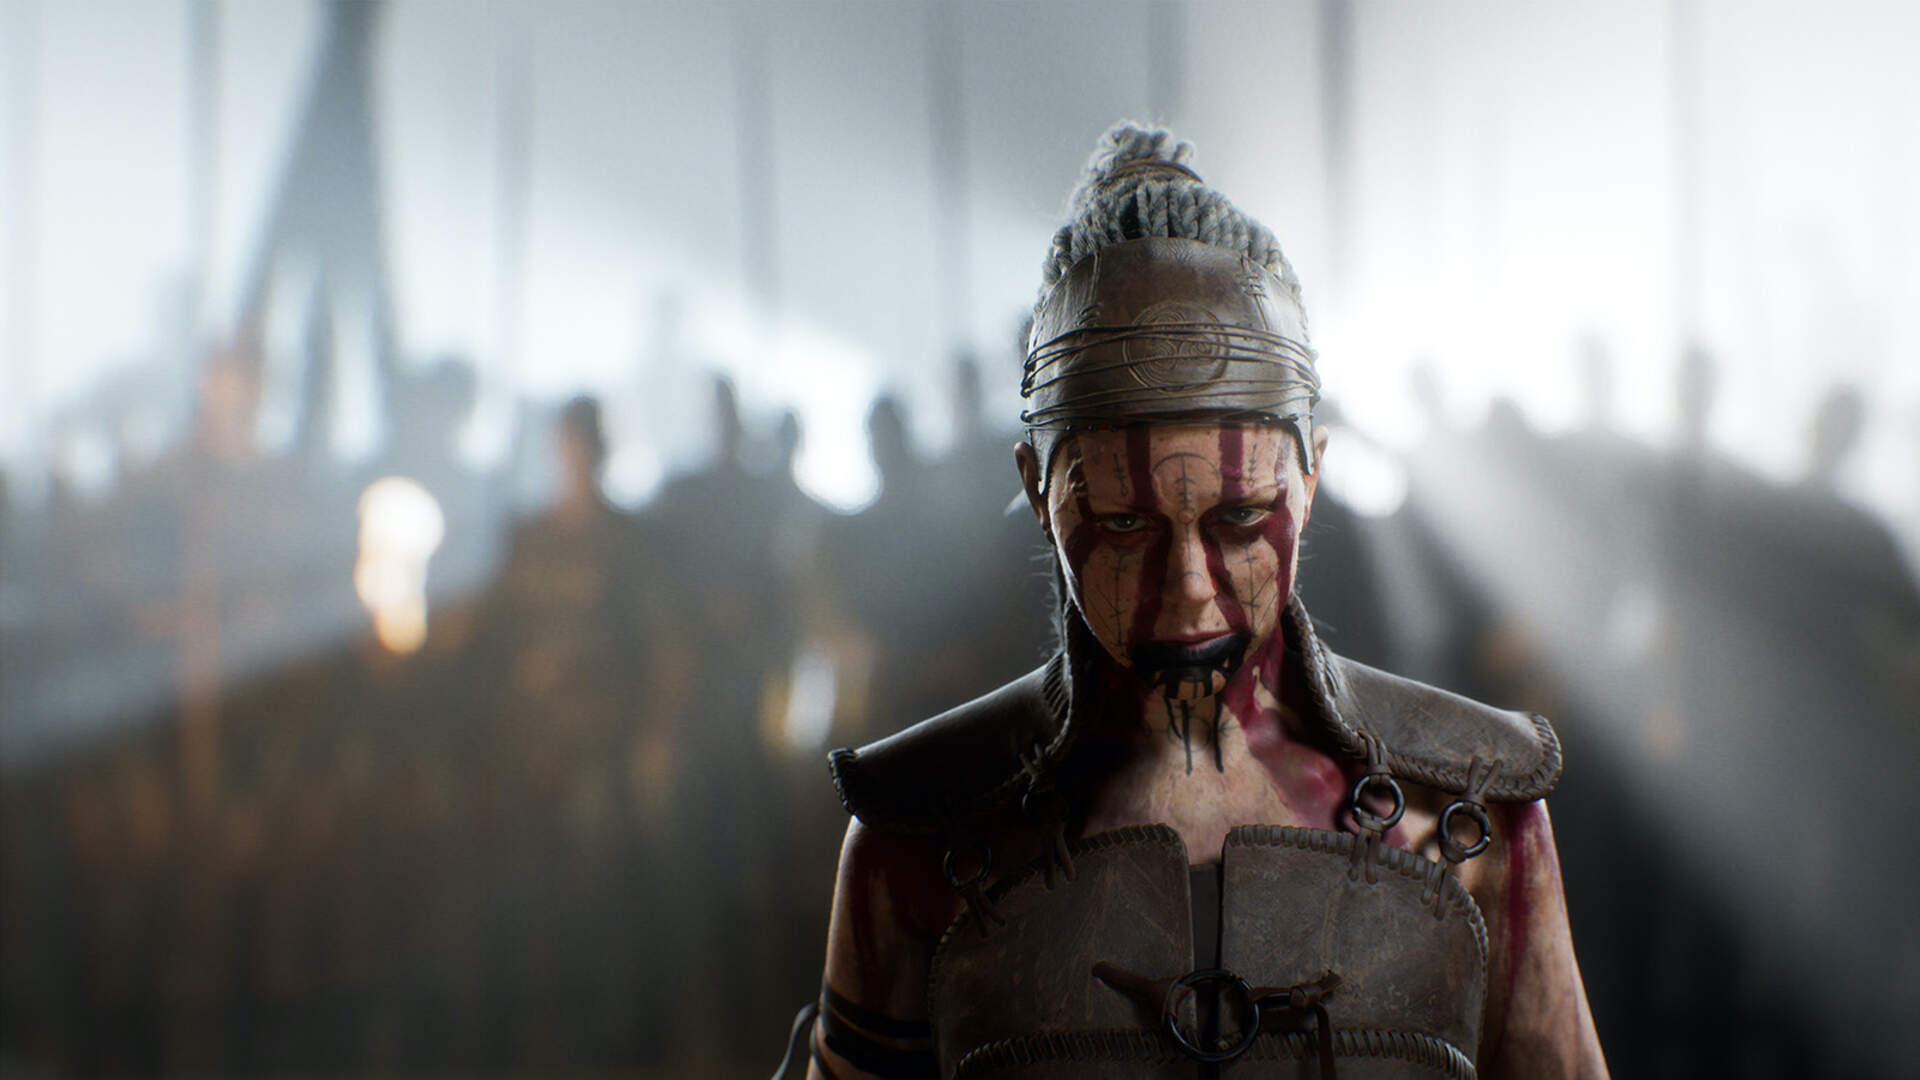 Senua's Saga: Hellblade 2 Will Be an Unreal Engine 5 Game [Update]